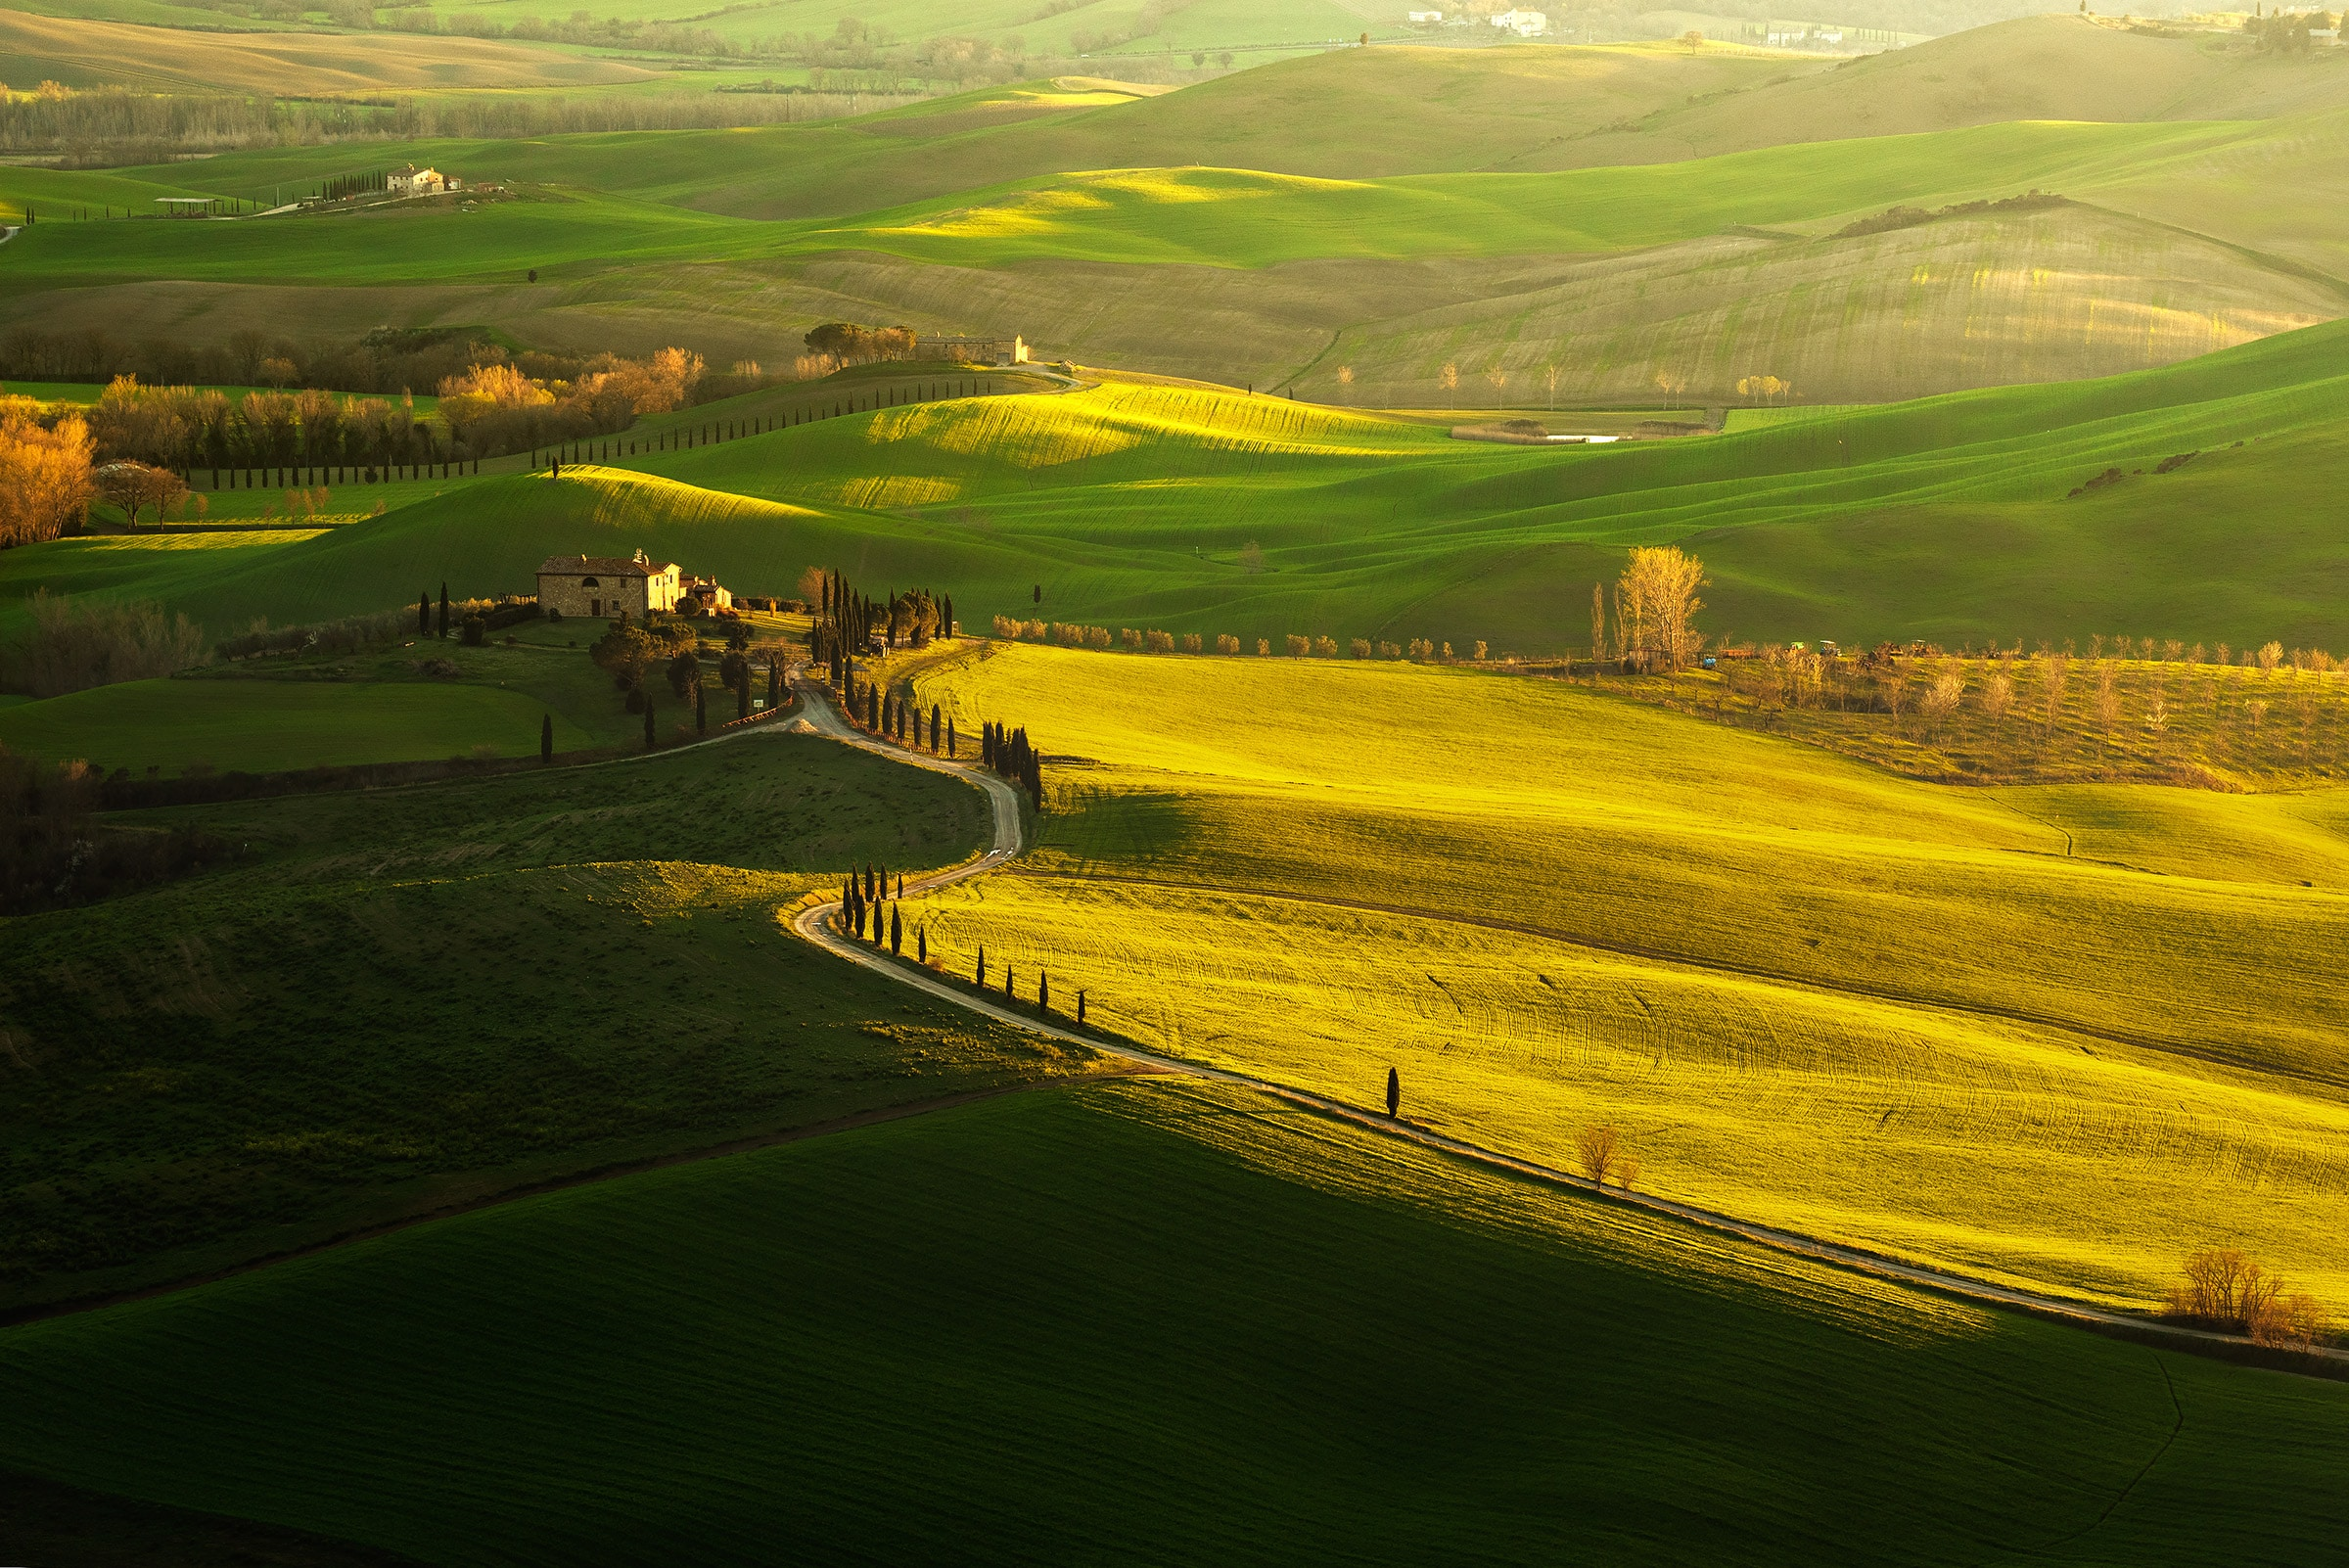 Tuscany spring sunset from Pienza photo workshop